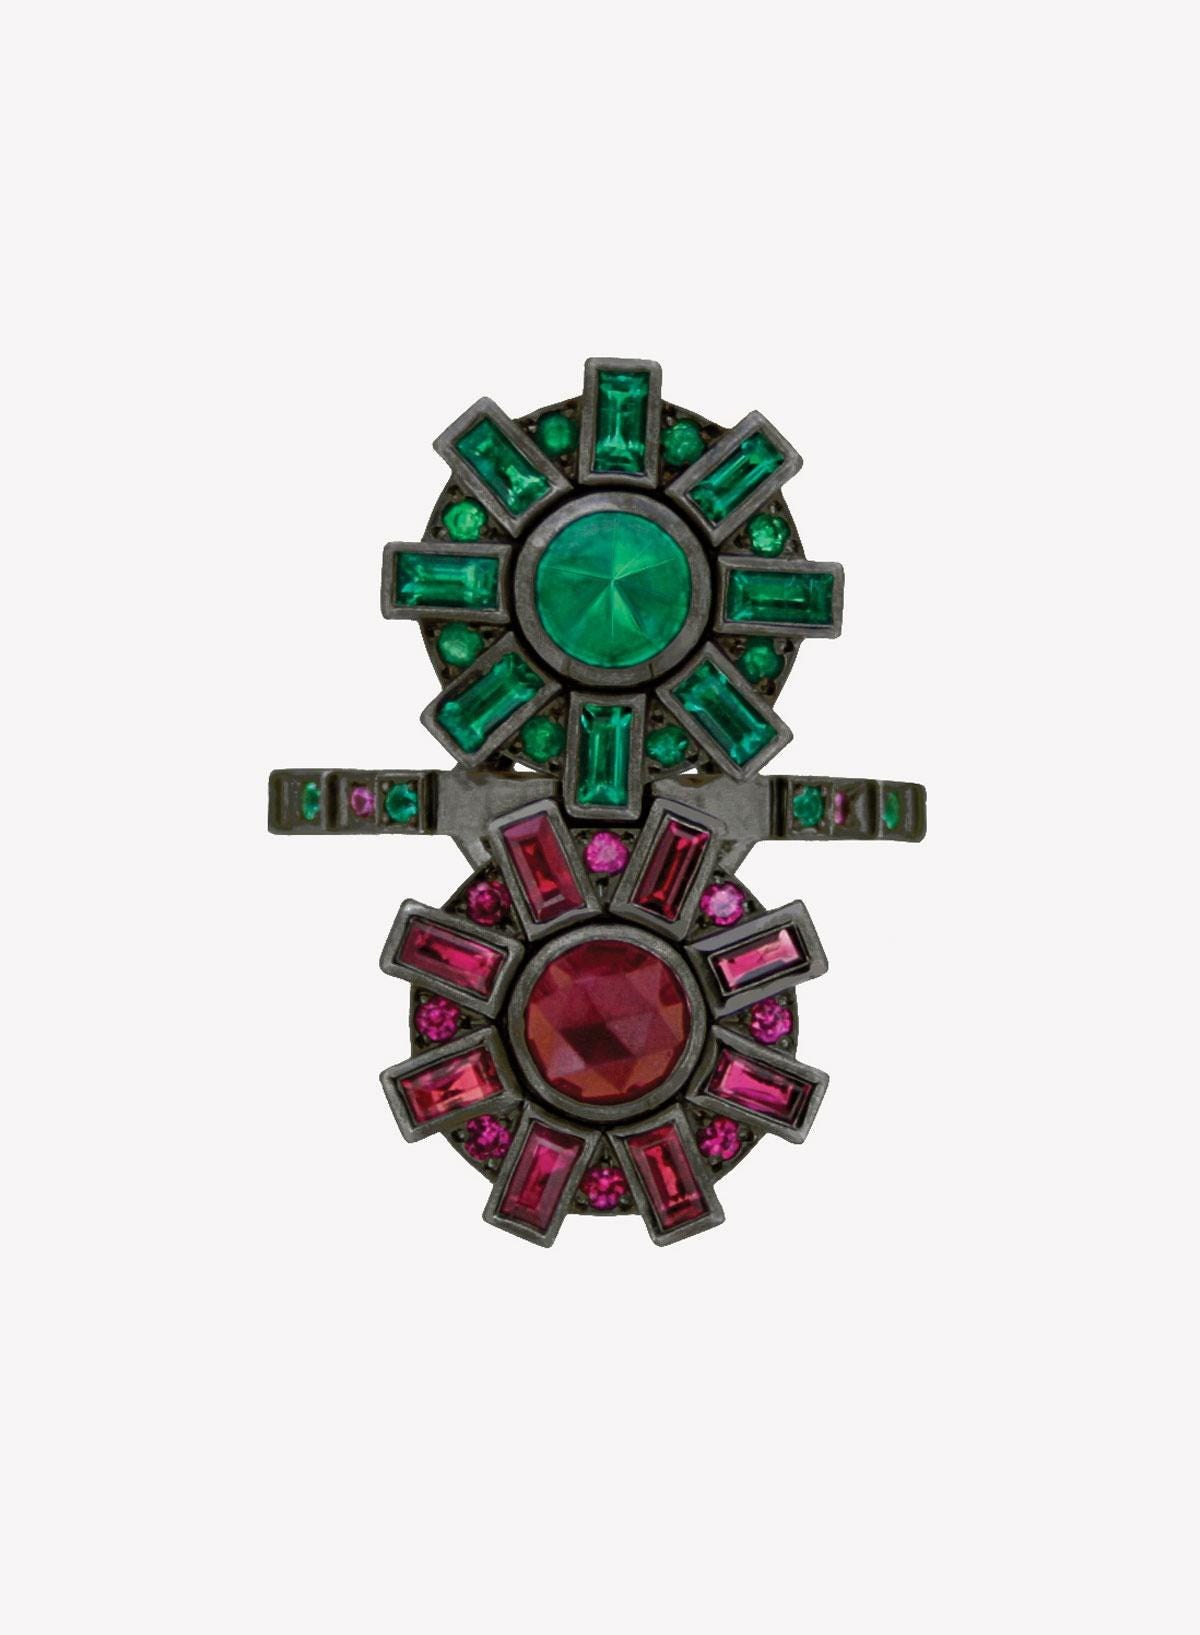 ruby and emerald cogs ring against a white background